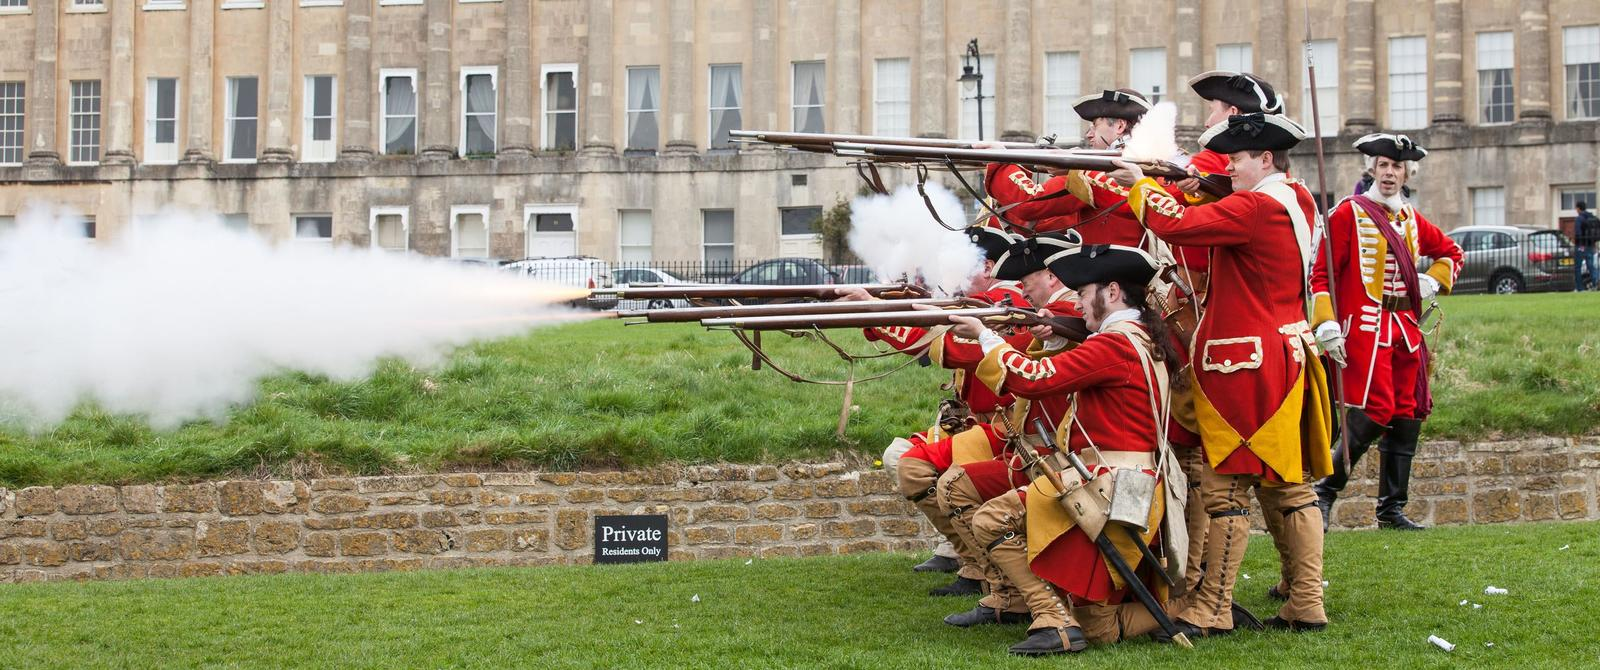 Image: soldiers re-enacting battle in front of Royal Crescent